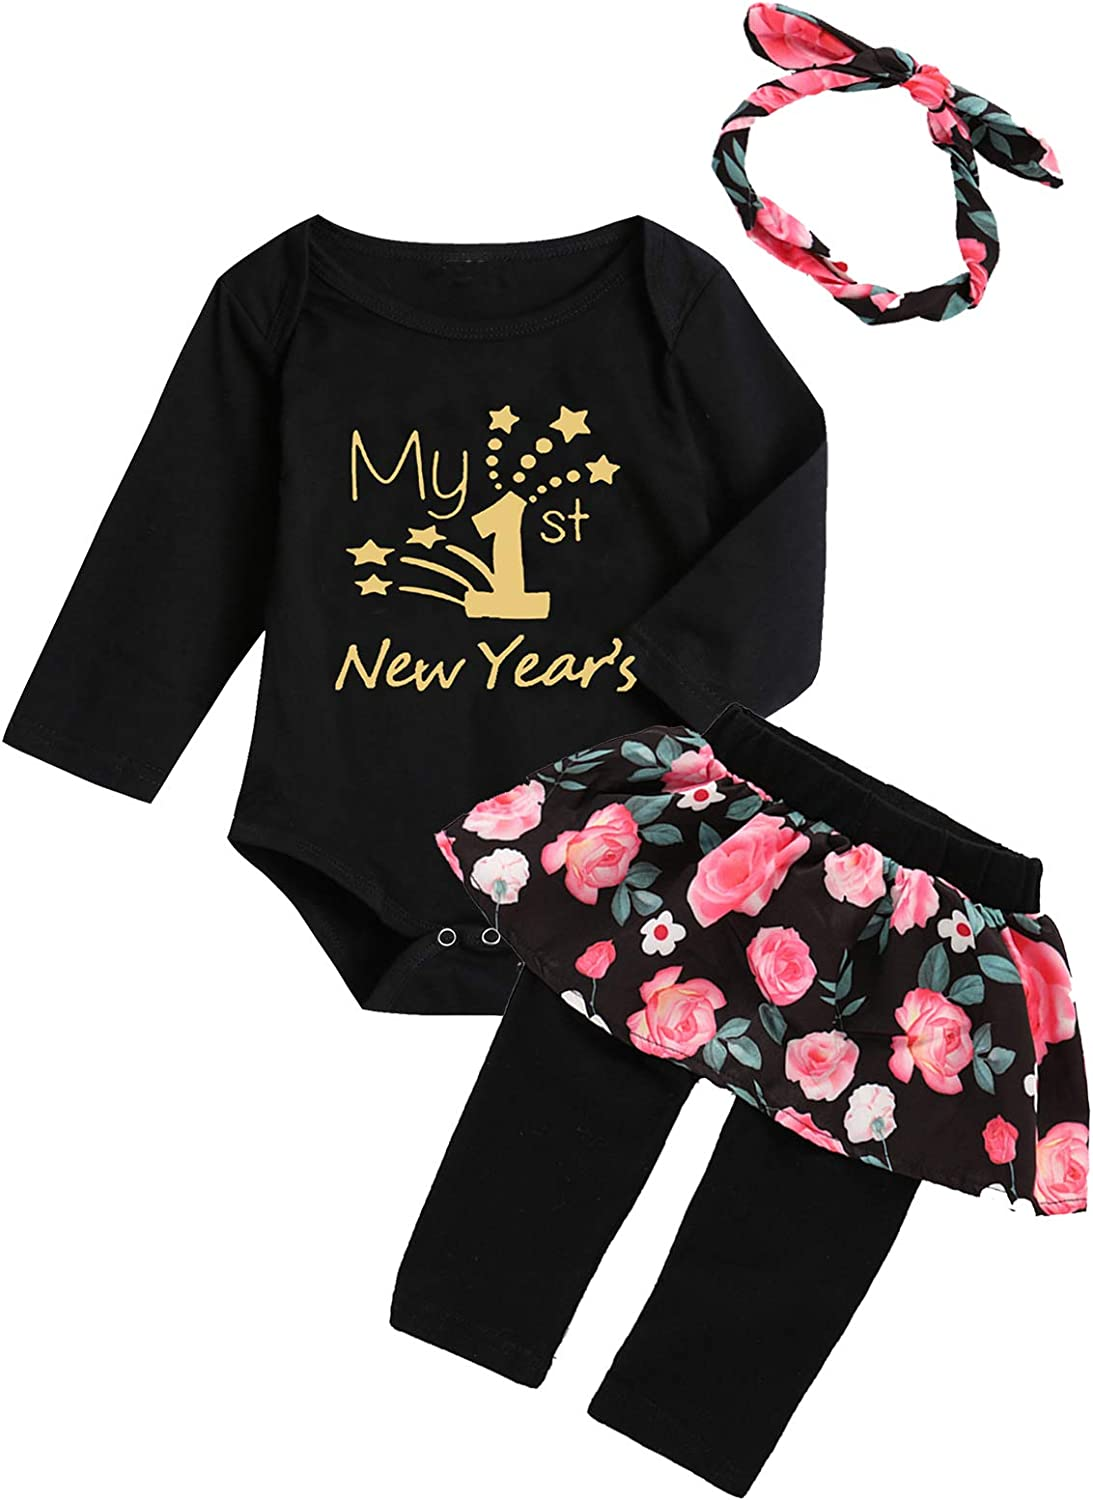 Truly One Baby Girl First New Year Outfit 1st New Year Skirt Set